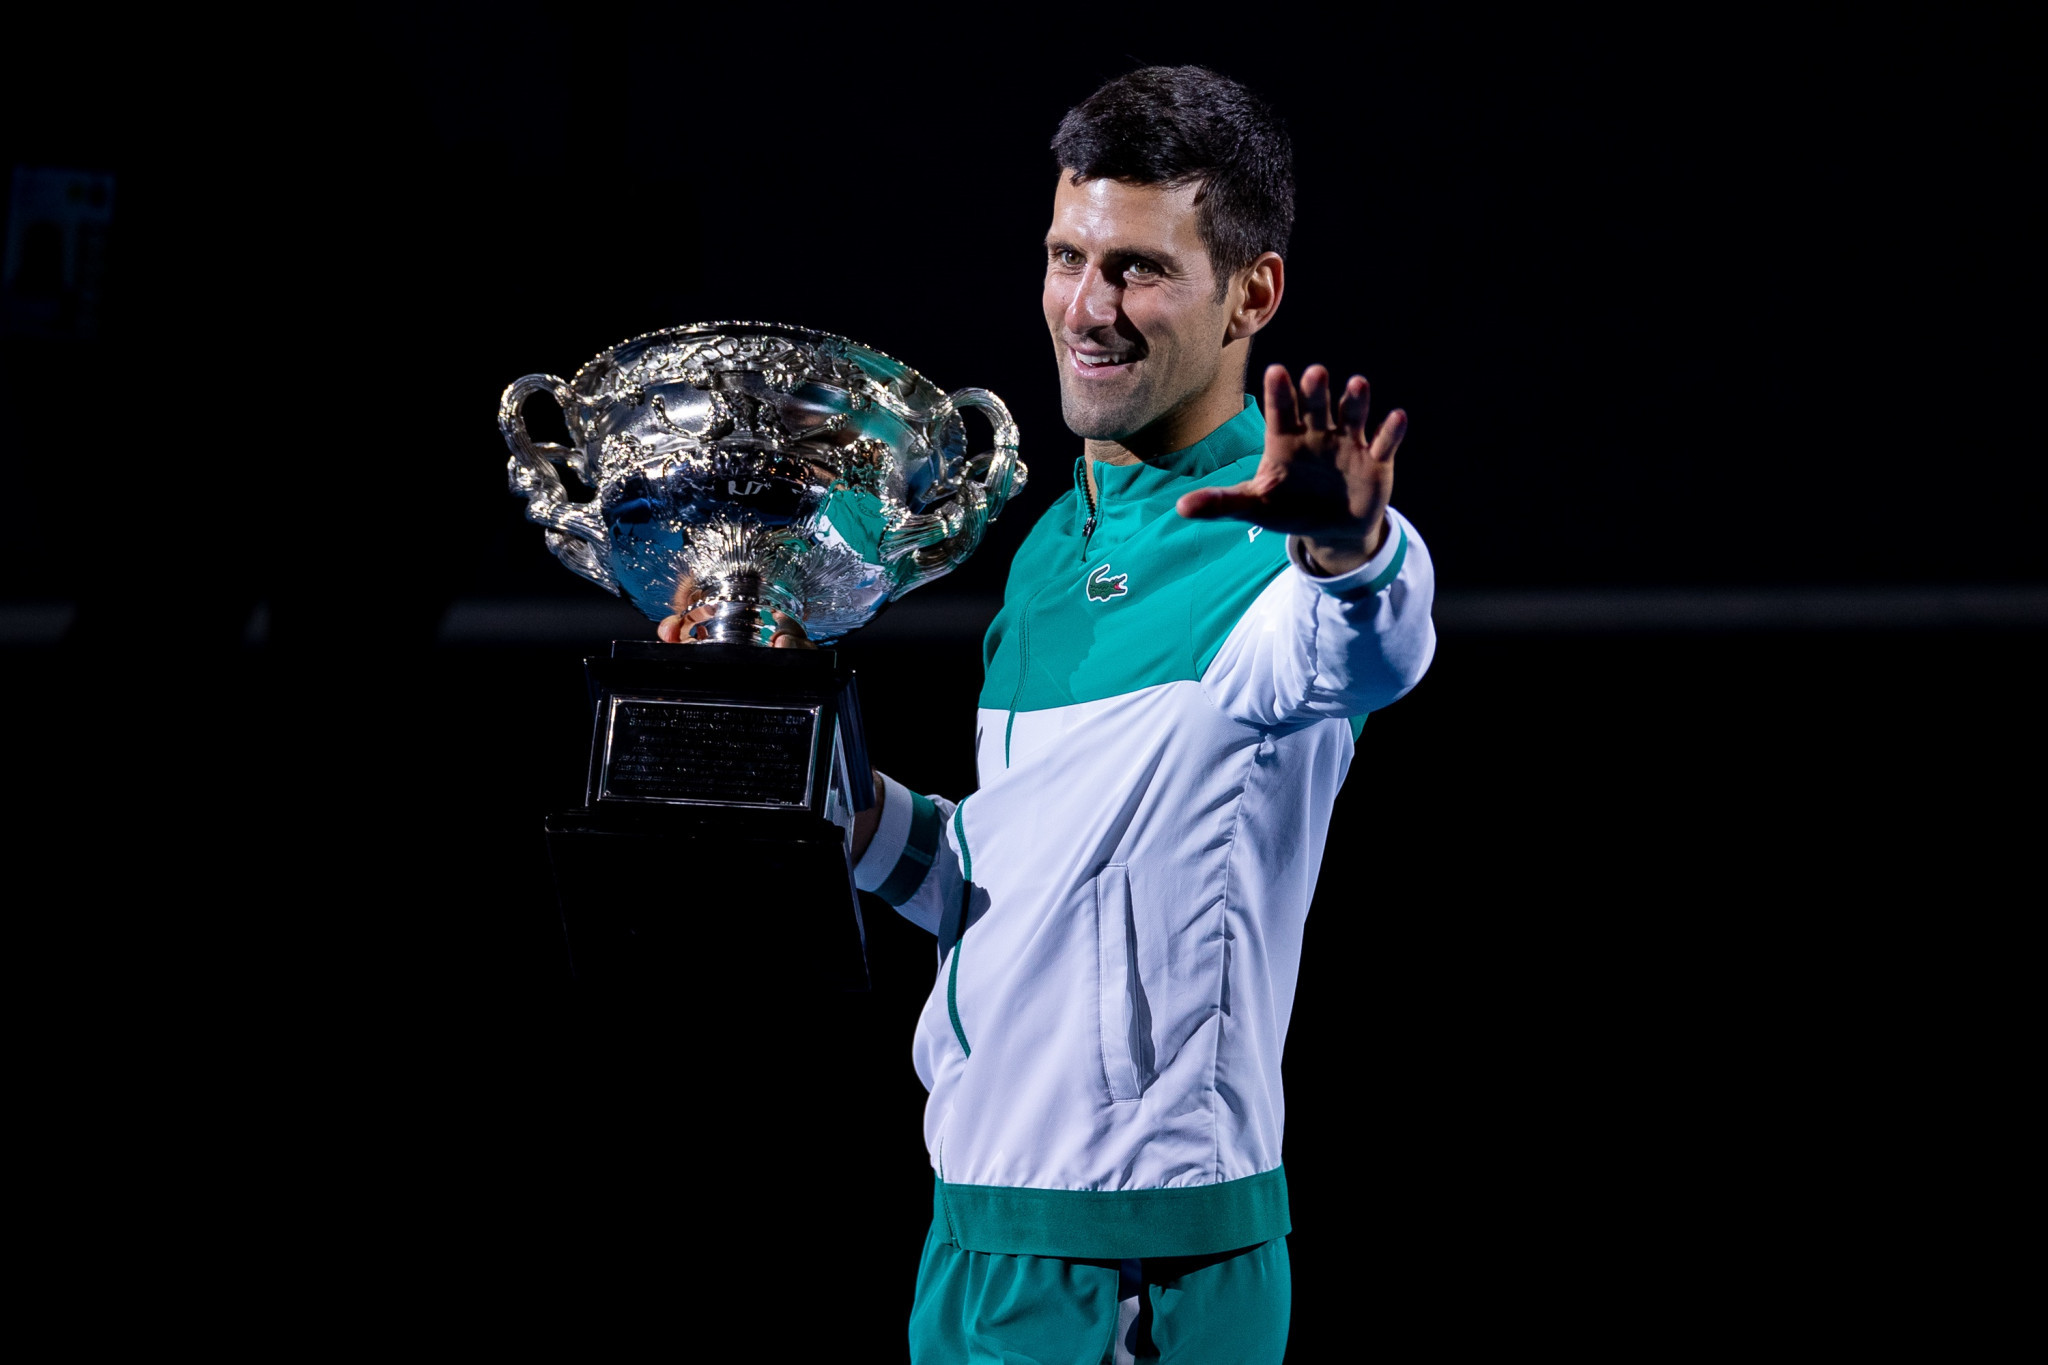 Djokovic unsure on playing Australian Open as Victoria Premier issues vaccine warning